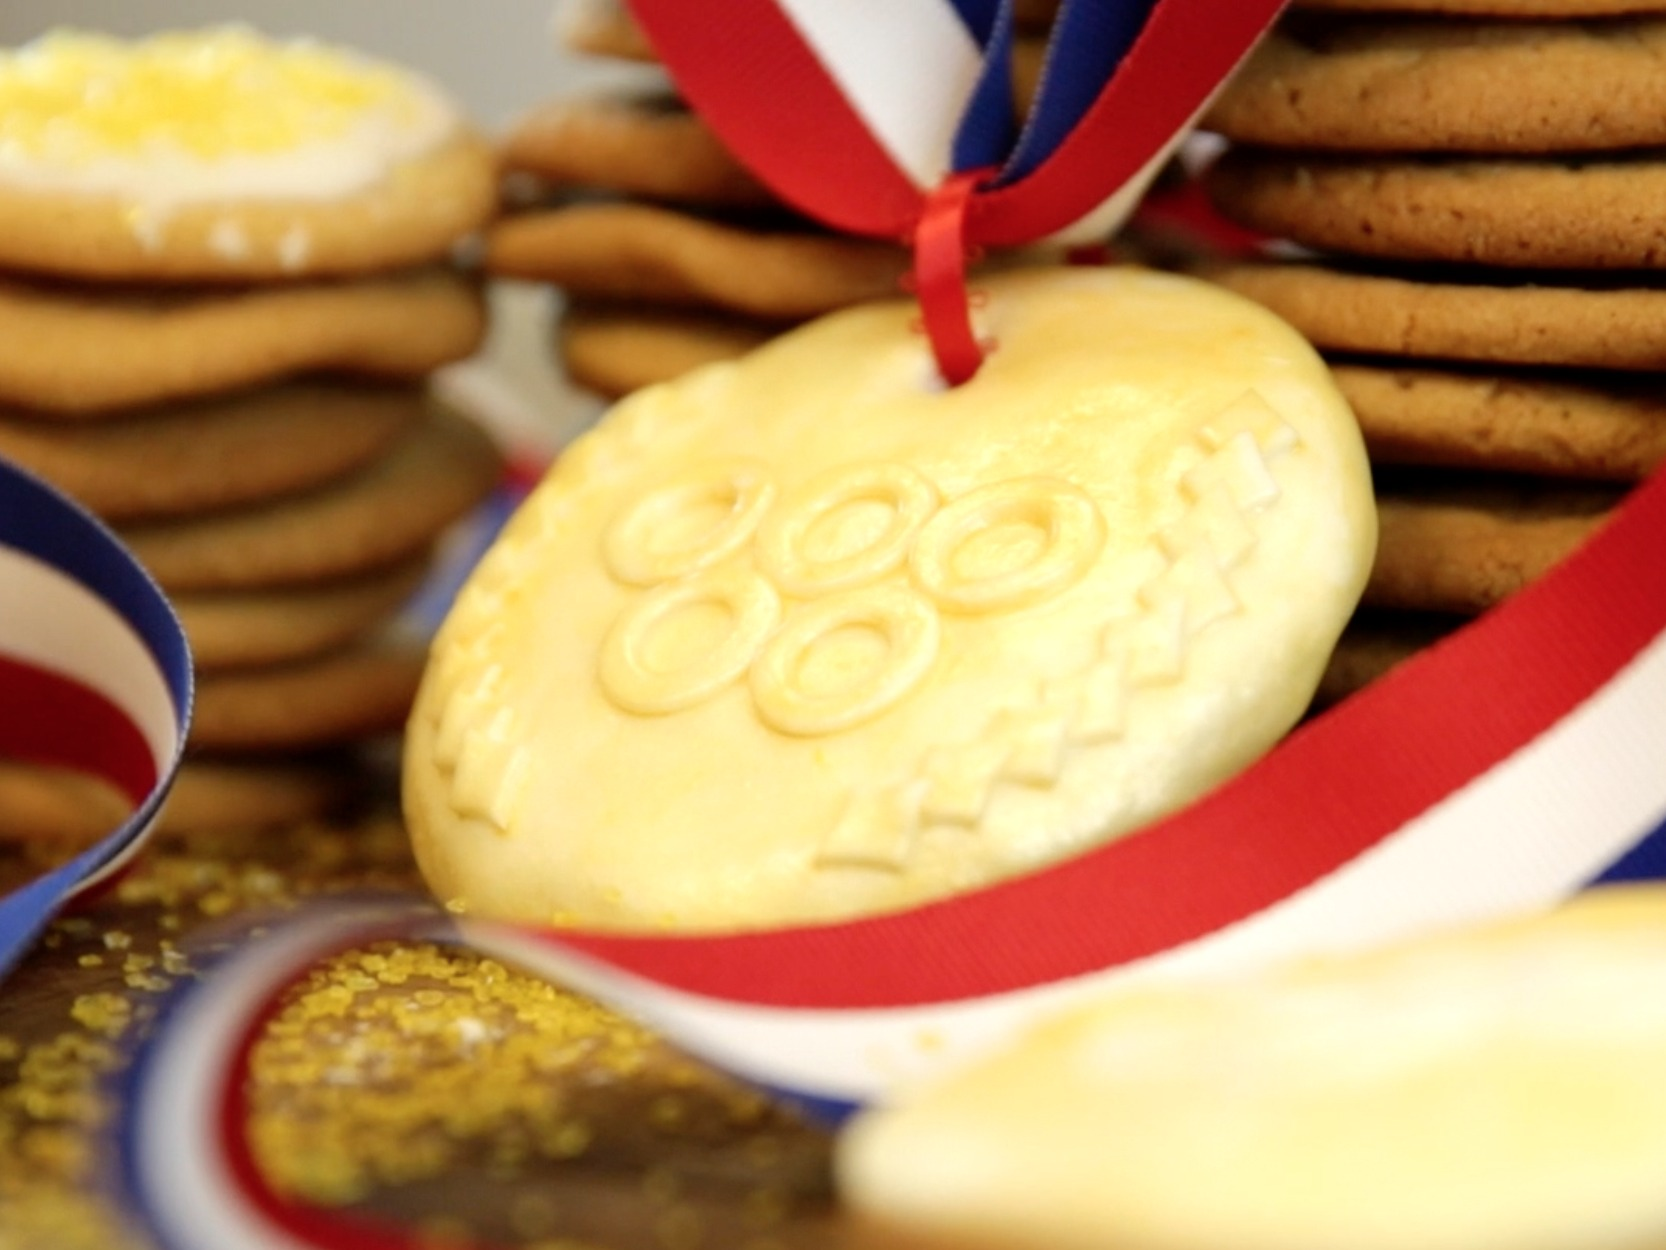 And the gold medal goes to… these delicious Olympics-inspired sugar cookies!